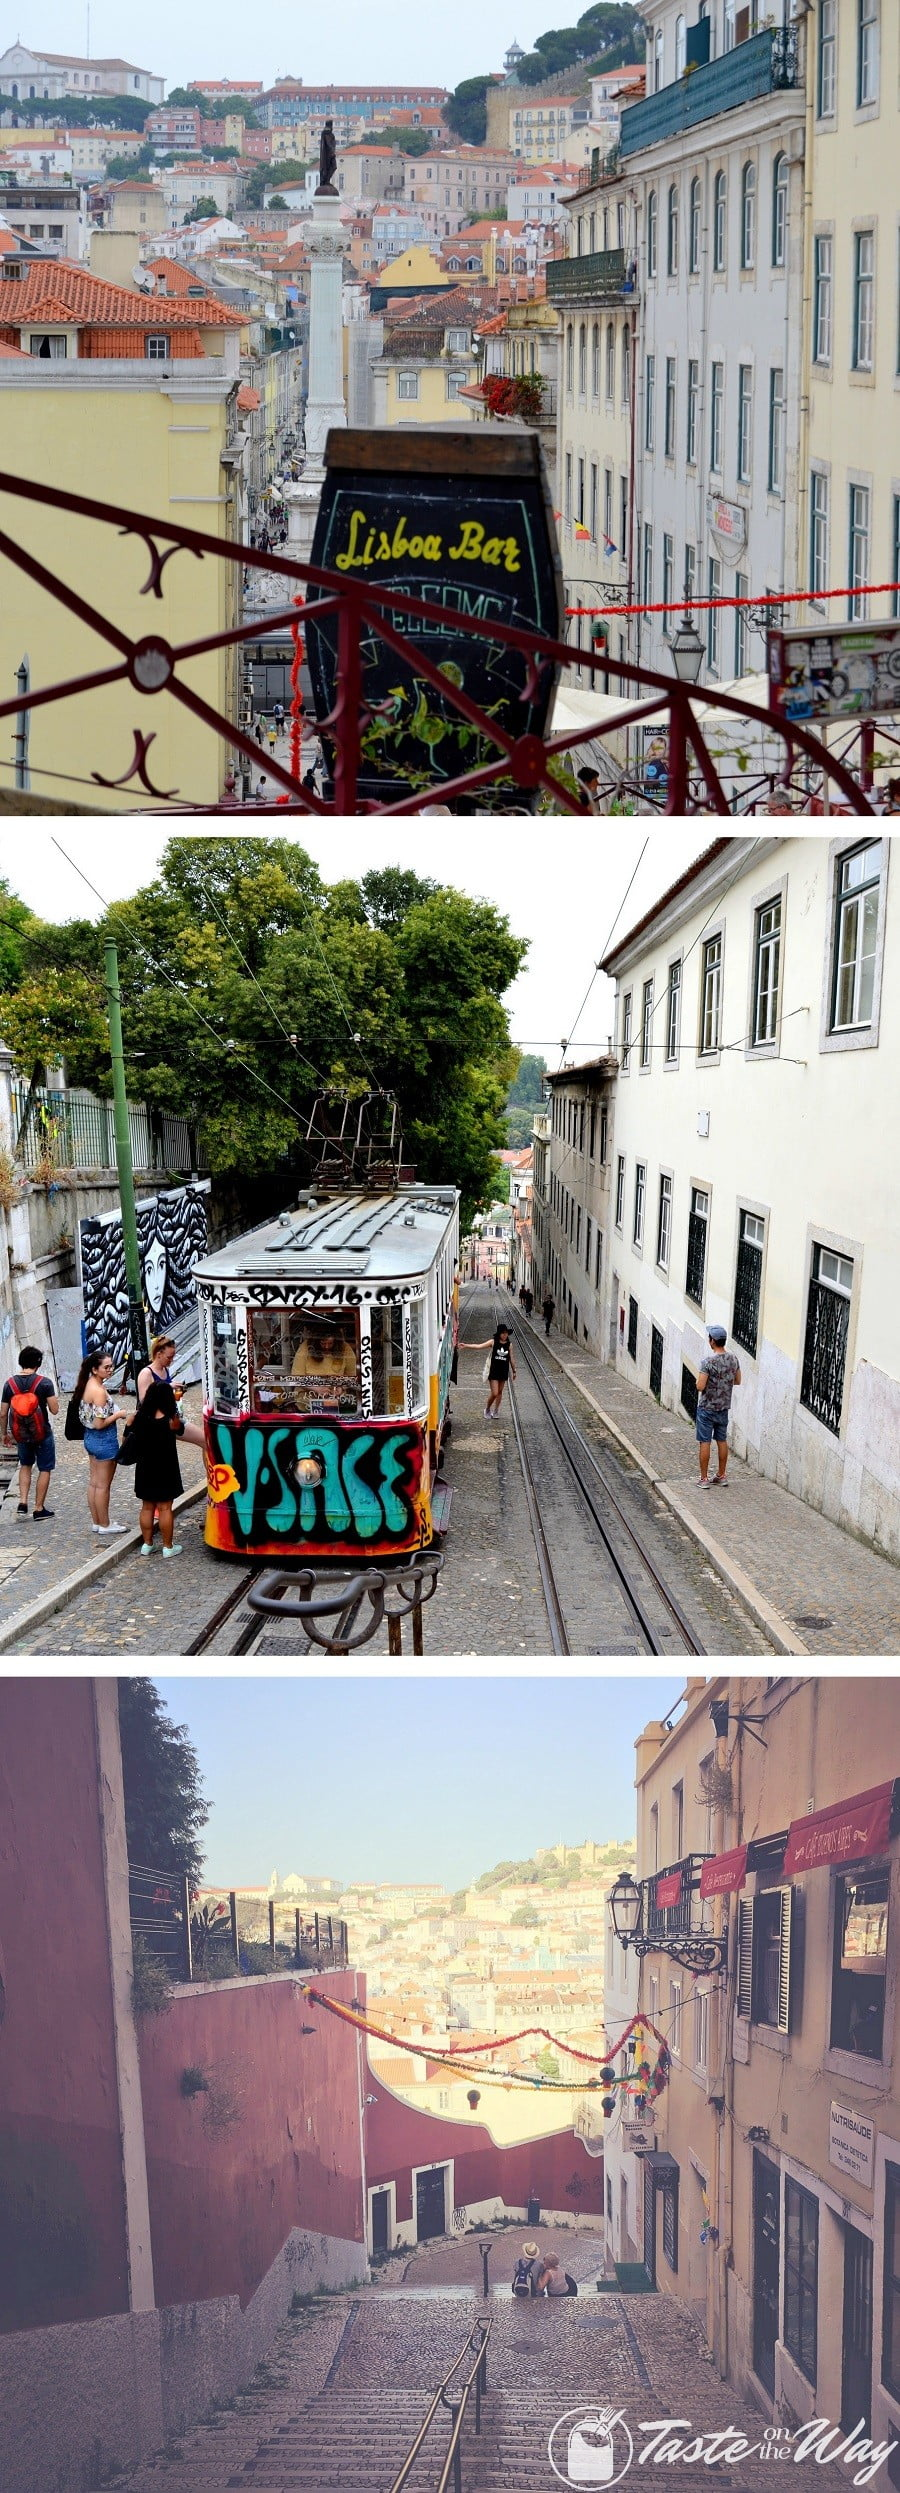 Top 15+ Best Things to Do in Lisbon, Portugal - One of the top fun #thingstodo in #Lisbon, #Portugal is to taste Port Wine in Bairro Alto. Check out for more! #travel #photography @tasteontheway